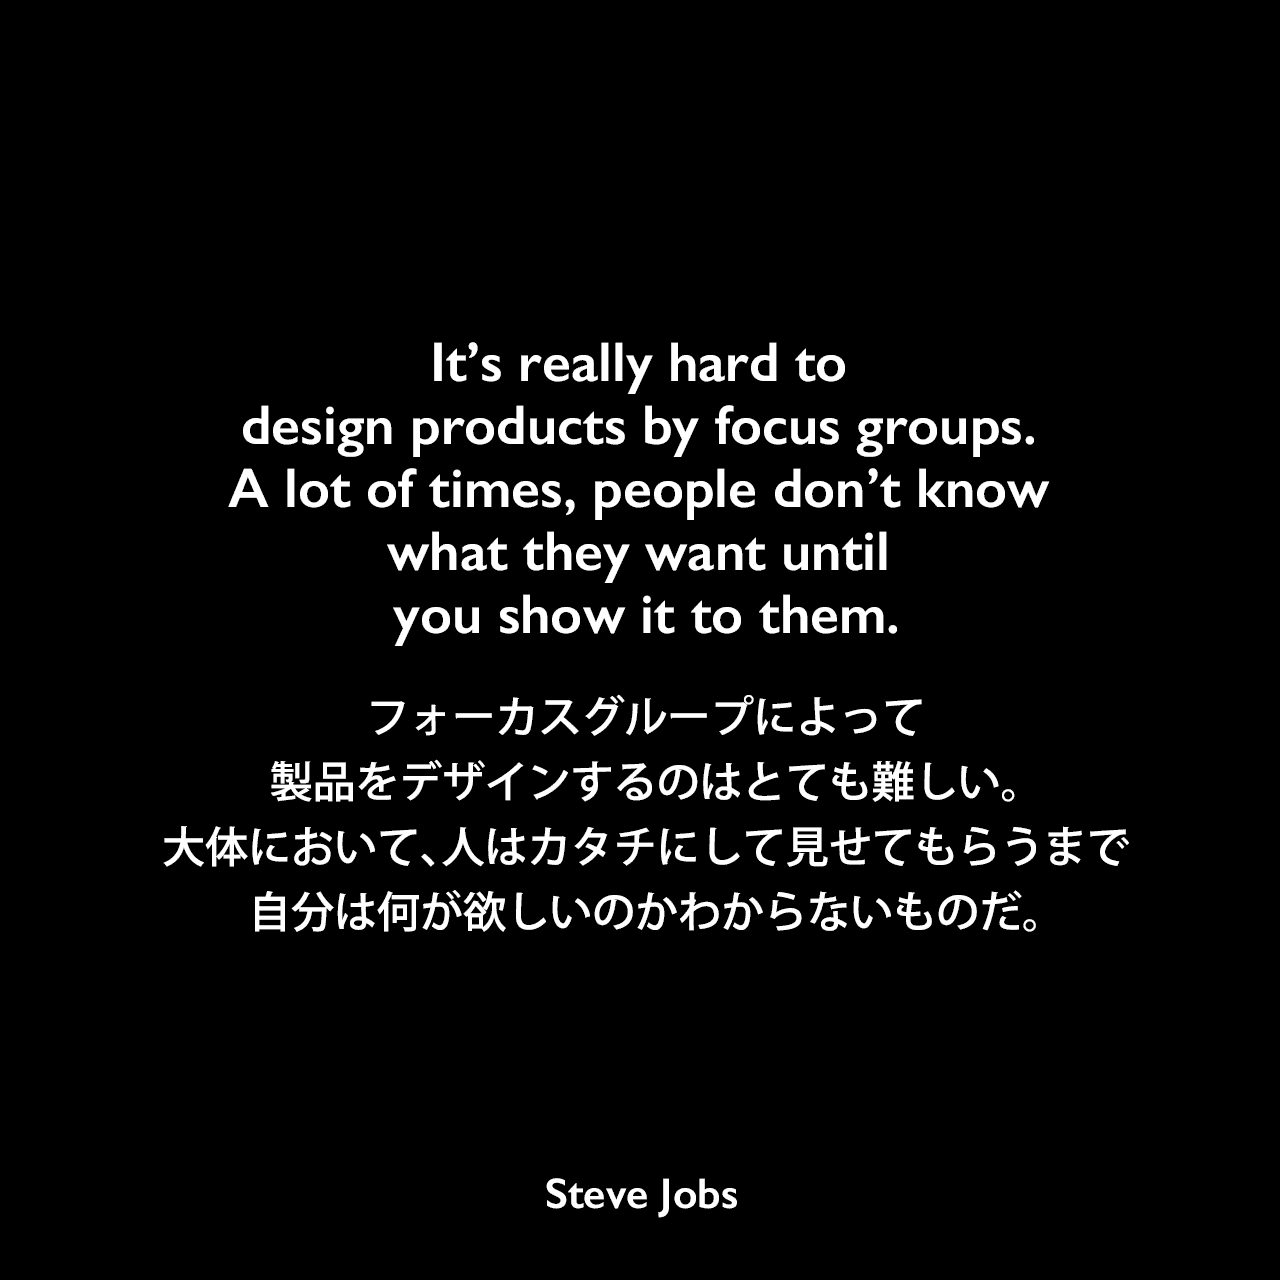 It's really hard to design products by focus groups. A lot of times, people don't know what they want until you show it to them.フォーカスグループによって製品をデザインするのはとても難しい。大体において、人はカタチにして見せてもらうまで、自分は何が欲しいのかわからないものだ。- 1998年5月25日 BusinessWeekよりSteve Jobs